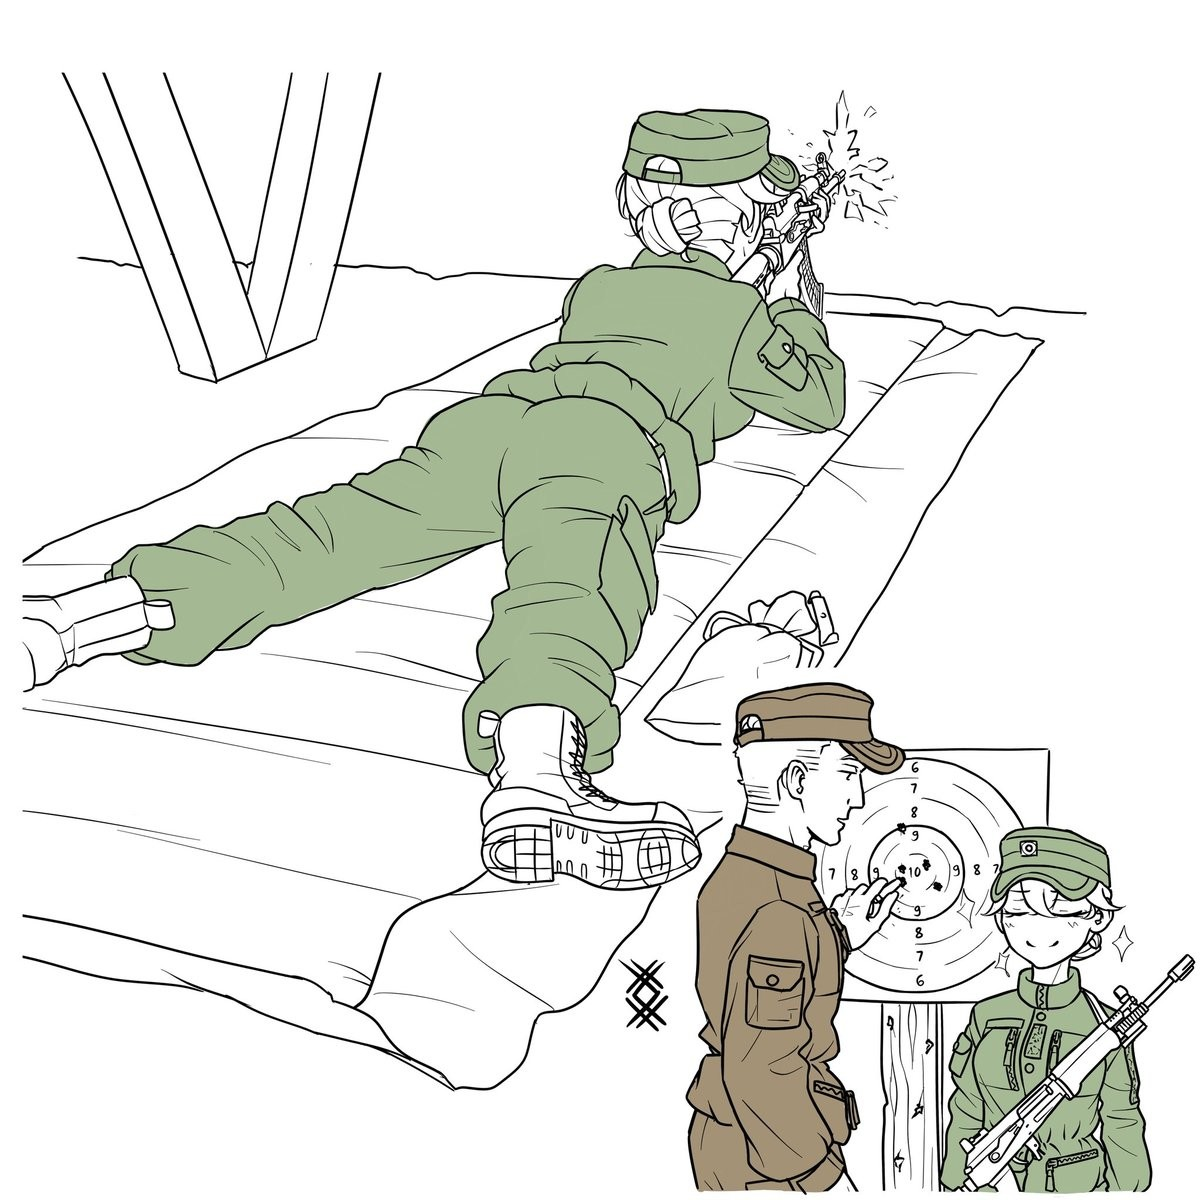 Army chan is good shot. .. I'm now reminded that their was a weeb in the Marine Corps who somehow made a popular web comic about an anime girl who joined the Marines.